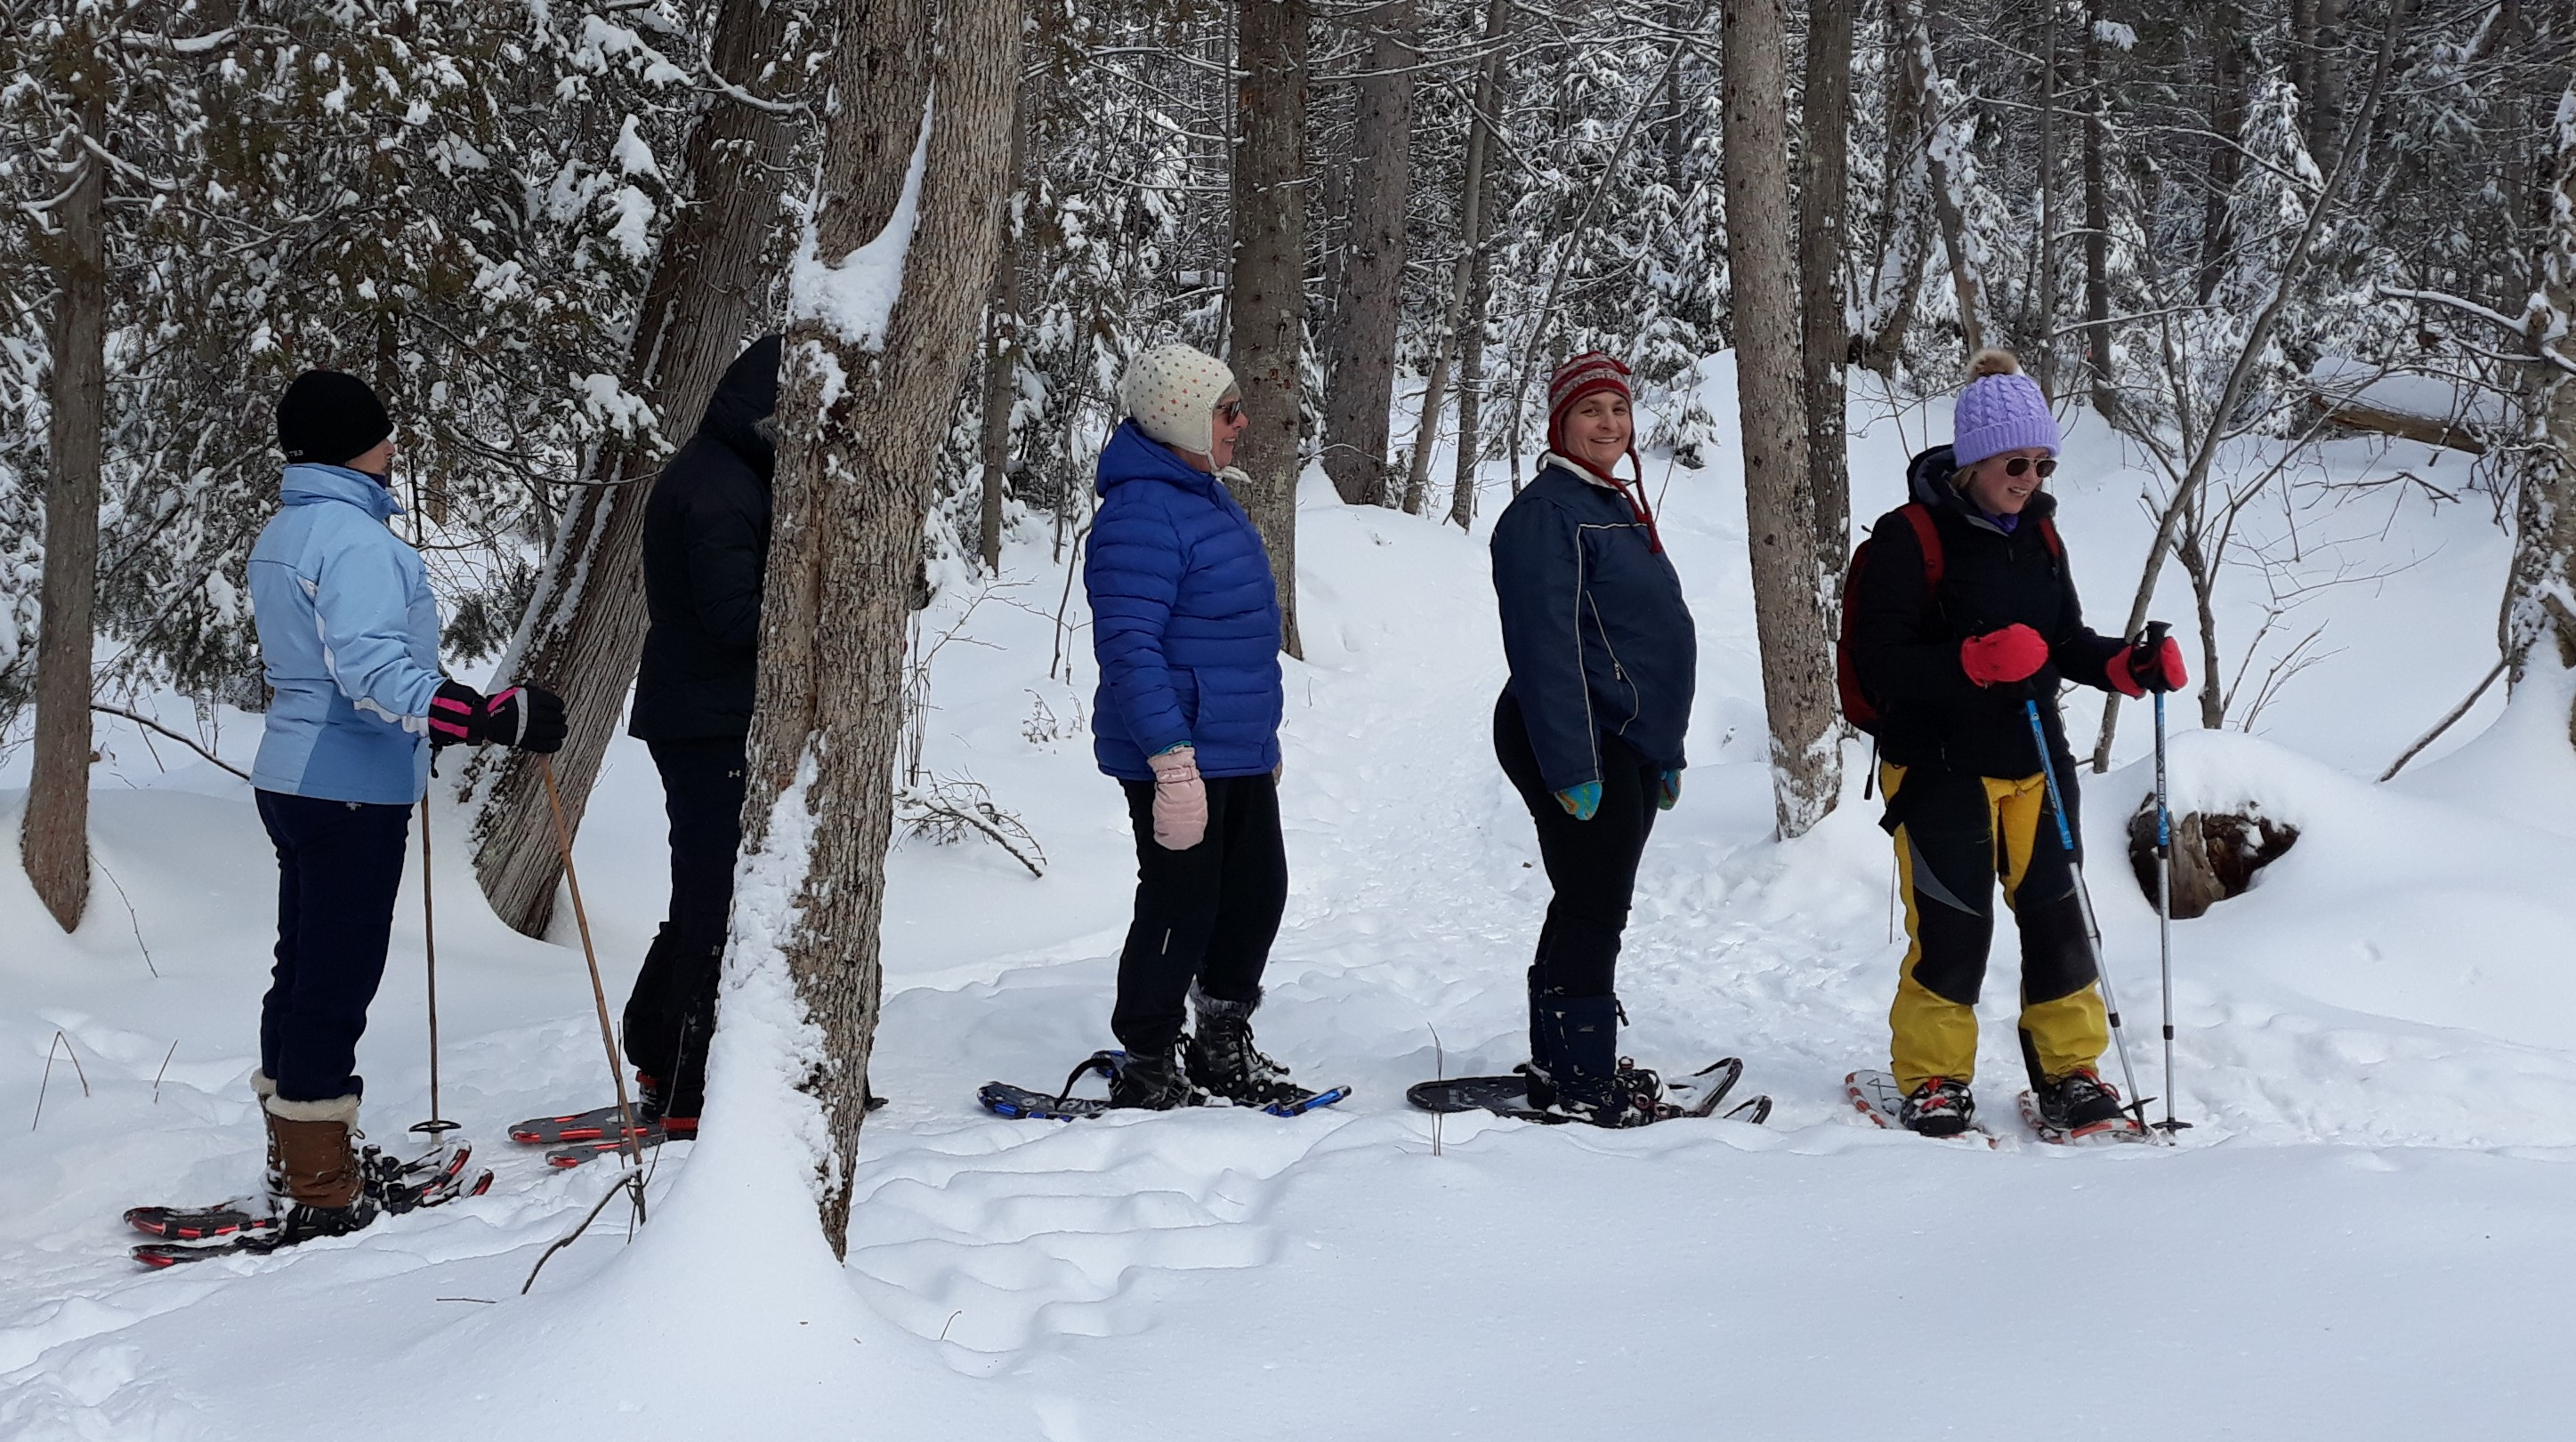 Line of snowshoe enthusiasts in the woods